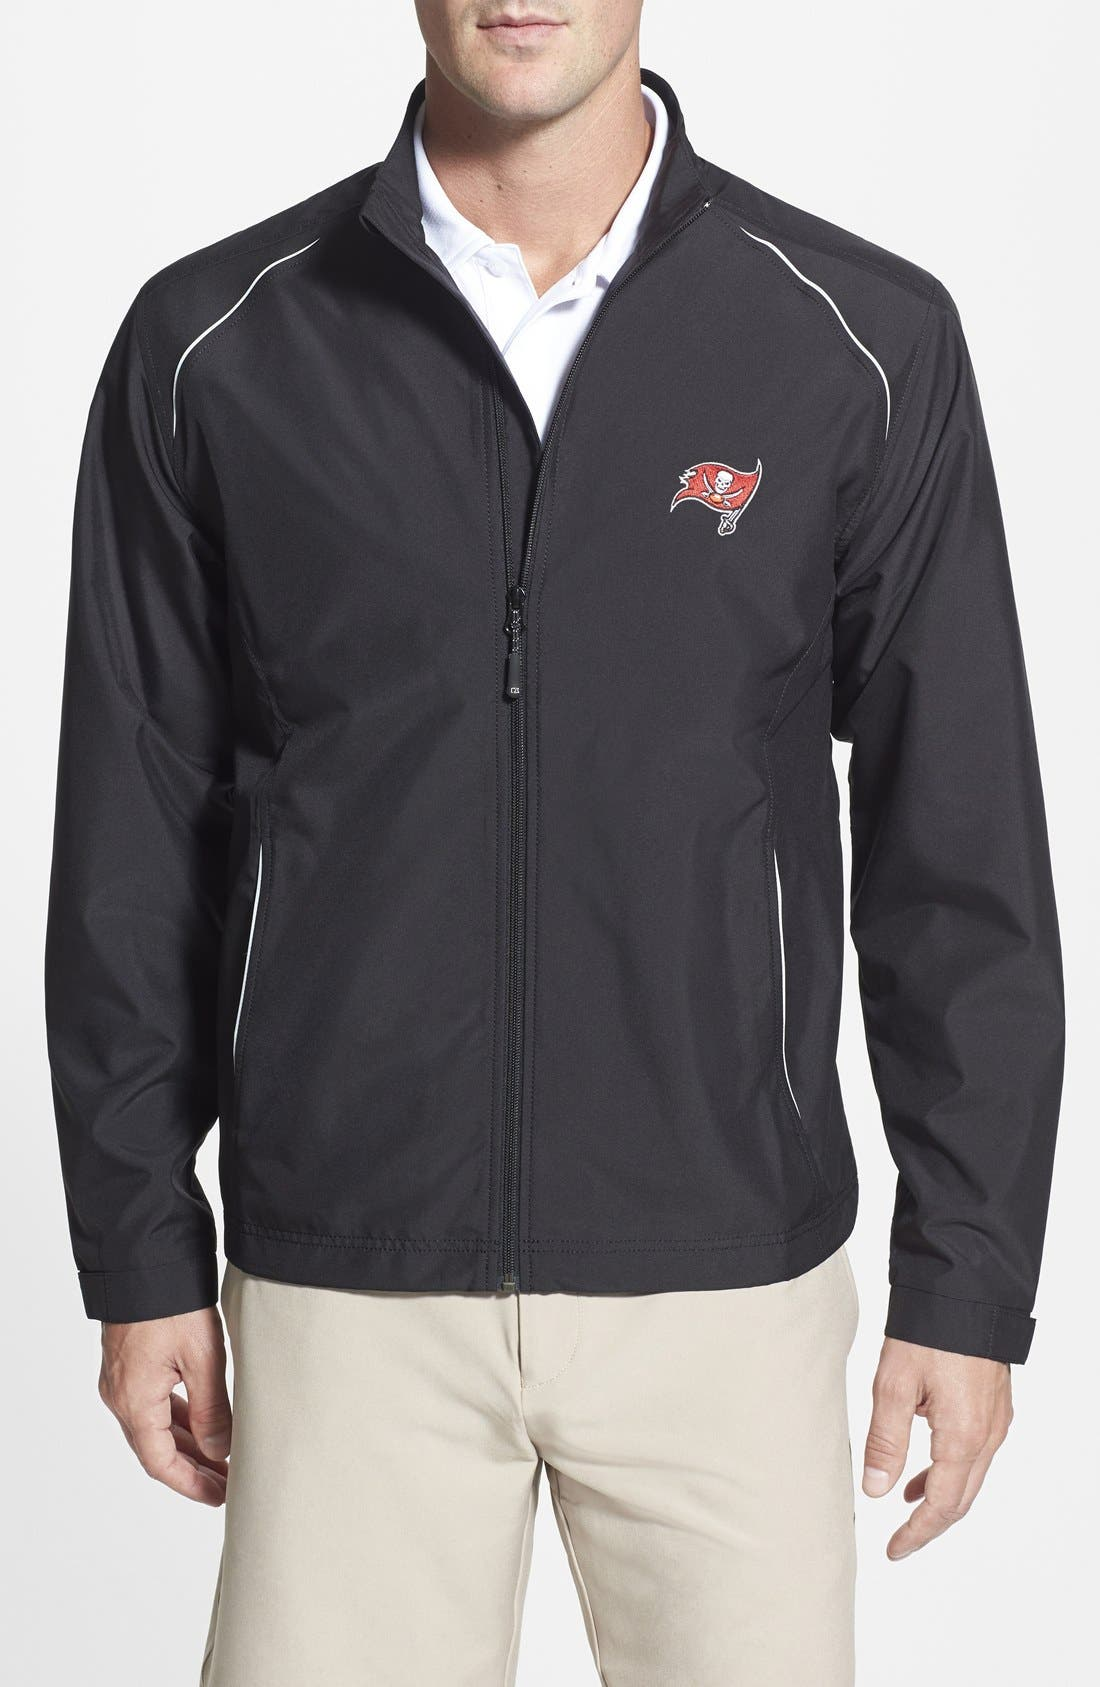 Tampa Bay Buccaneers - Beacon WeatherTec Wind & Water Resistant Jacket,                         Main,                         color, 001